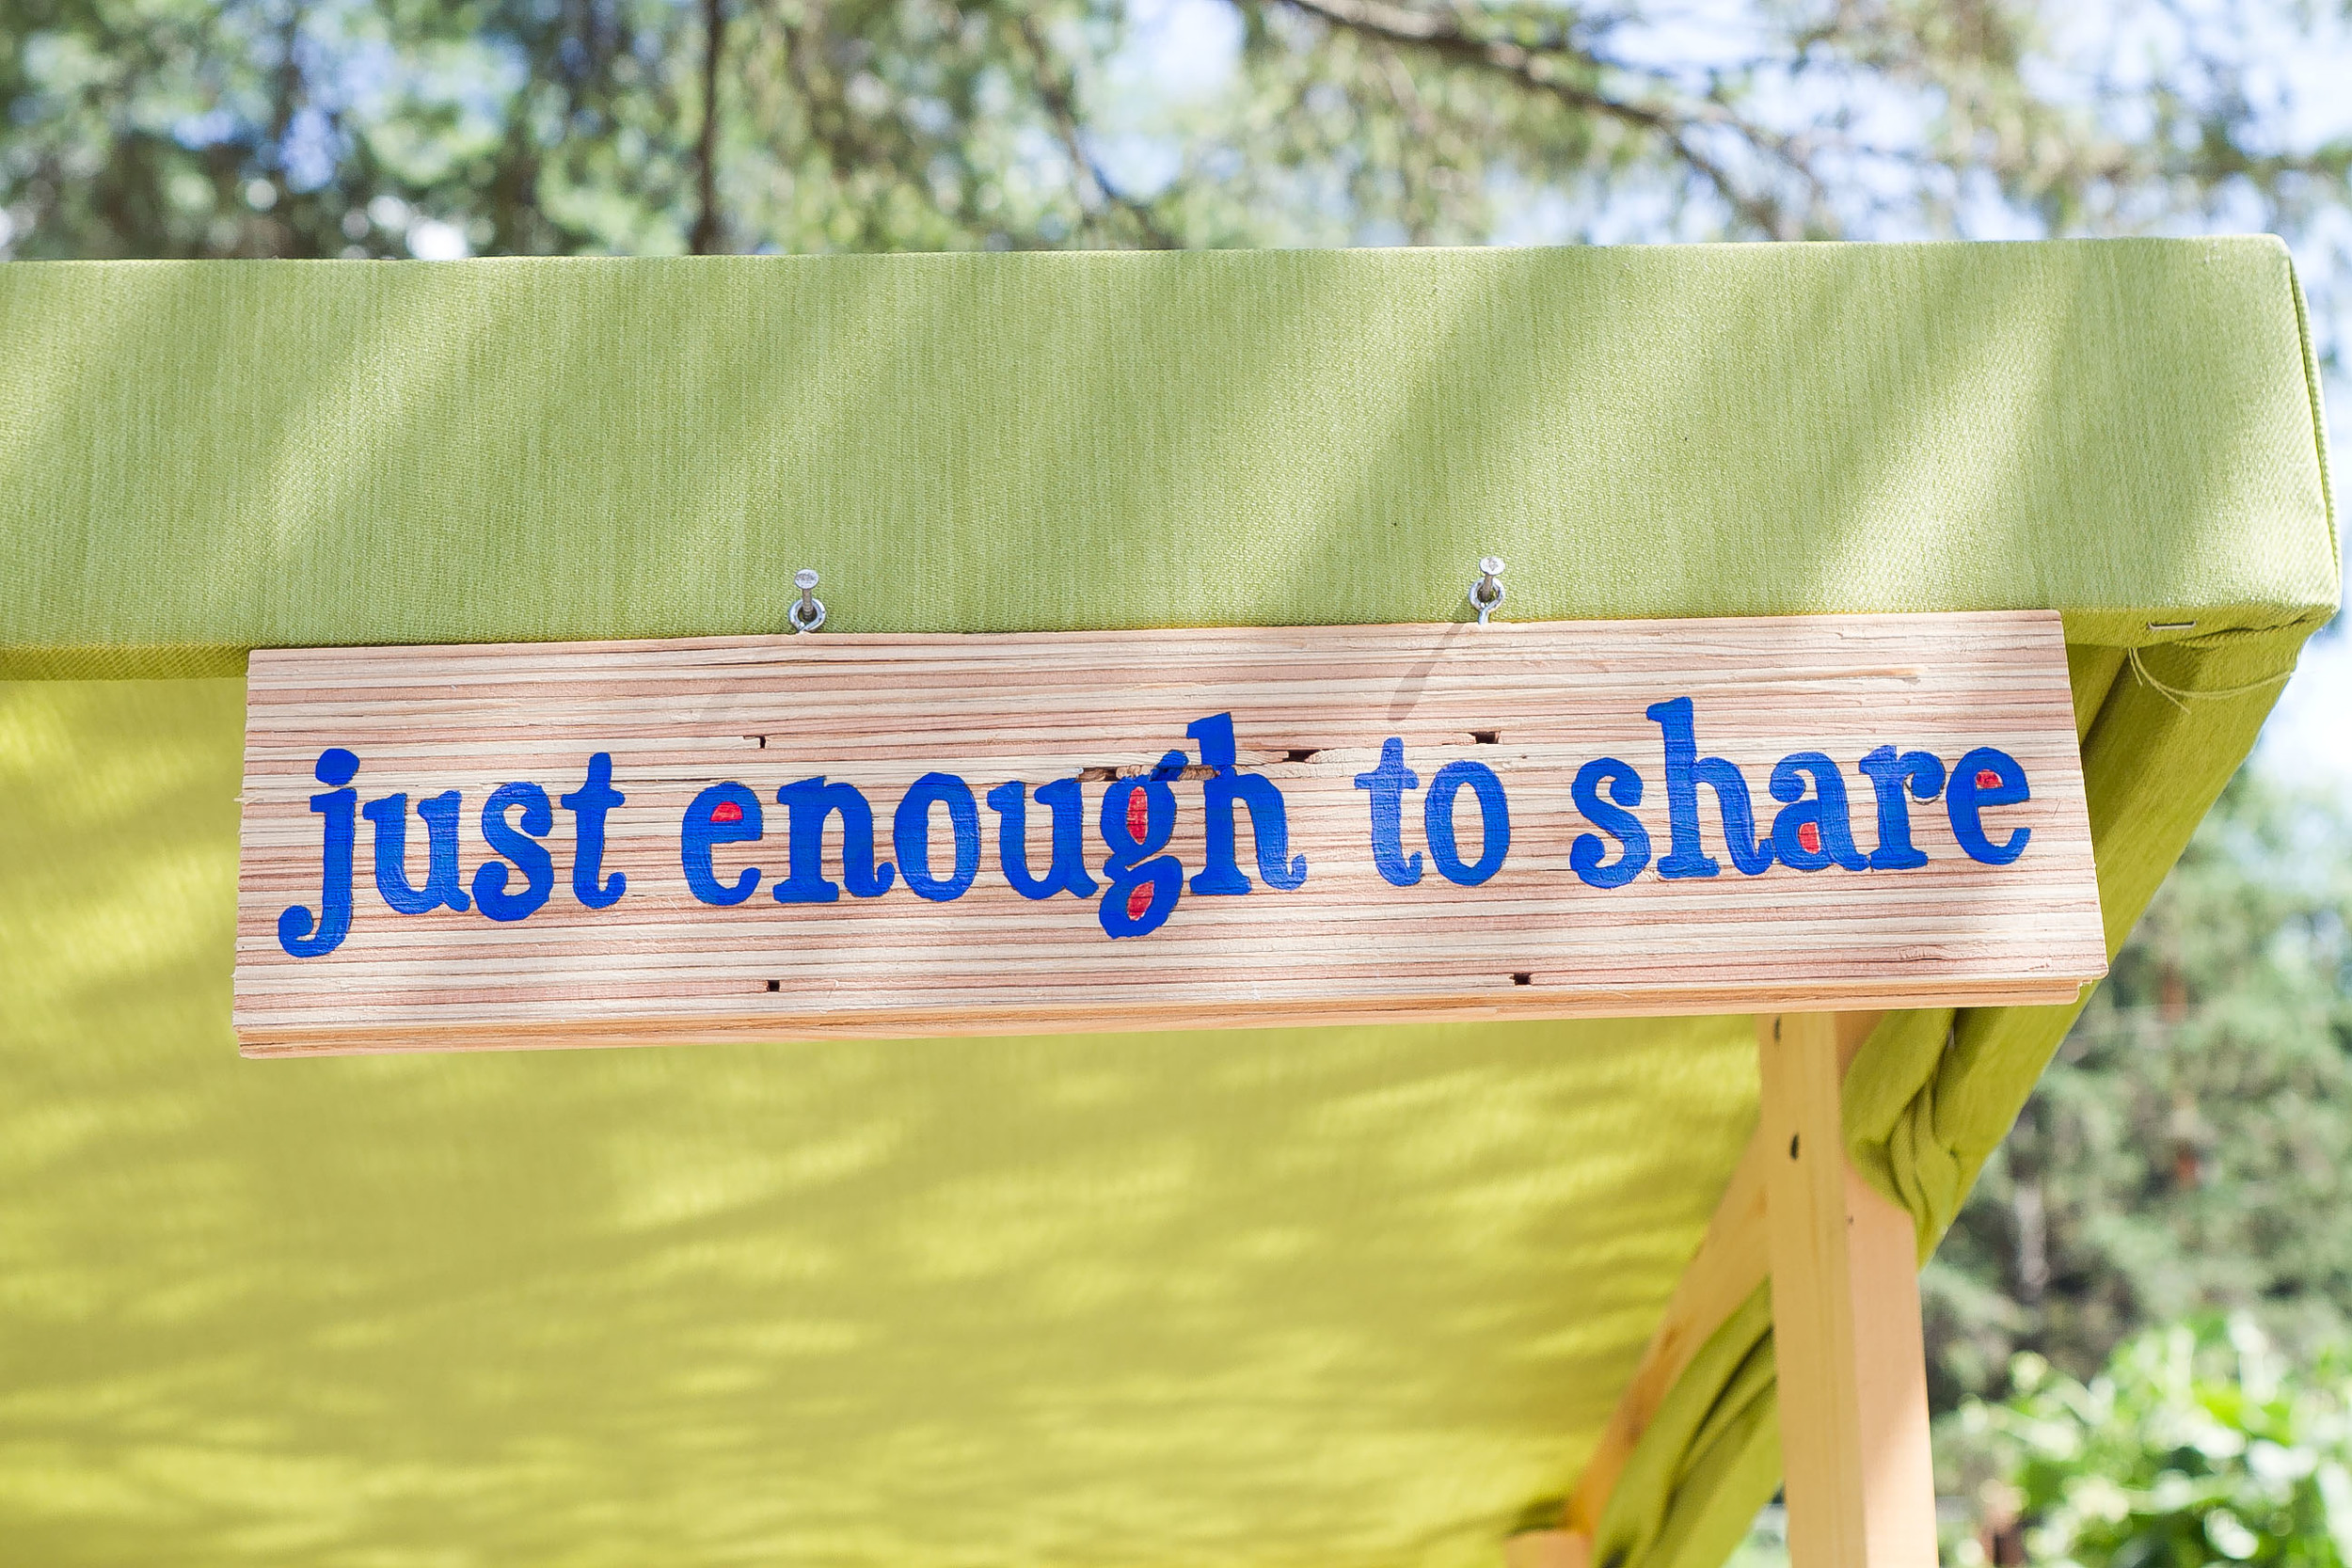 Farm stand sign: Just Enough to Share